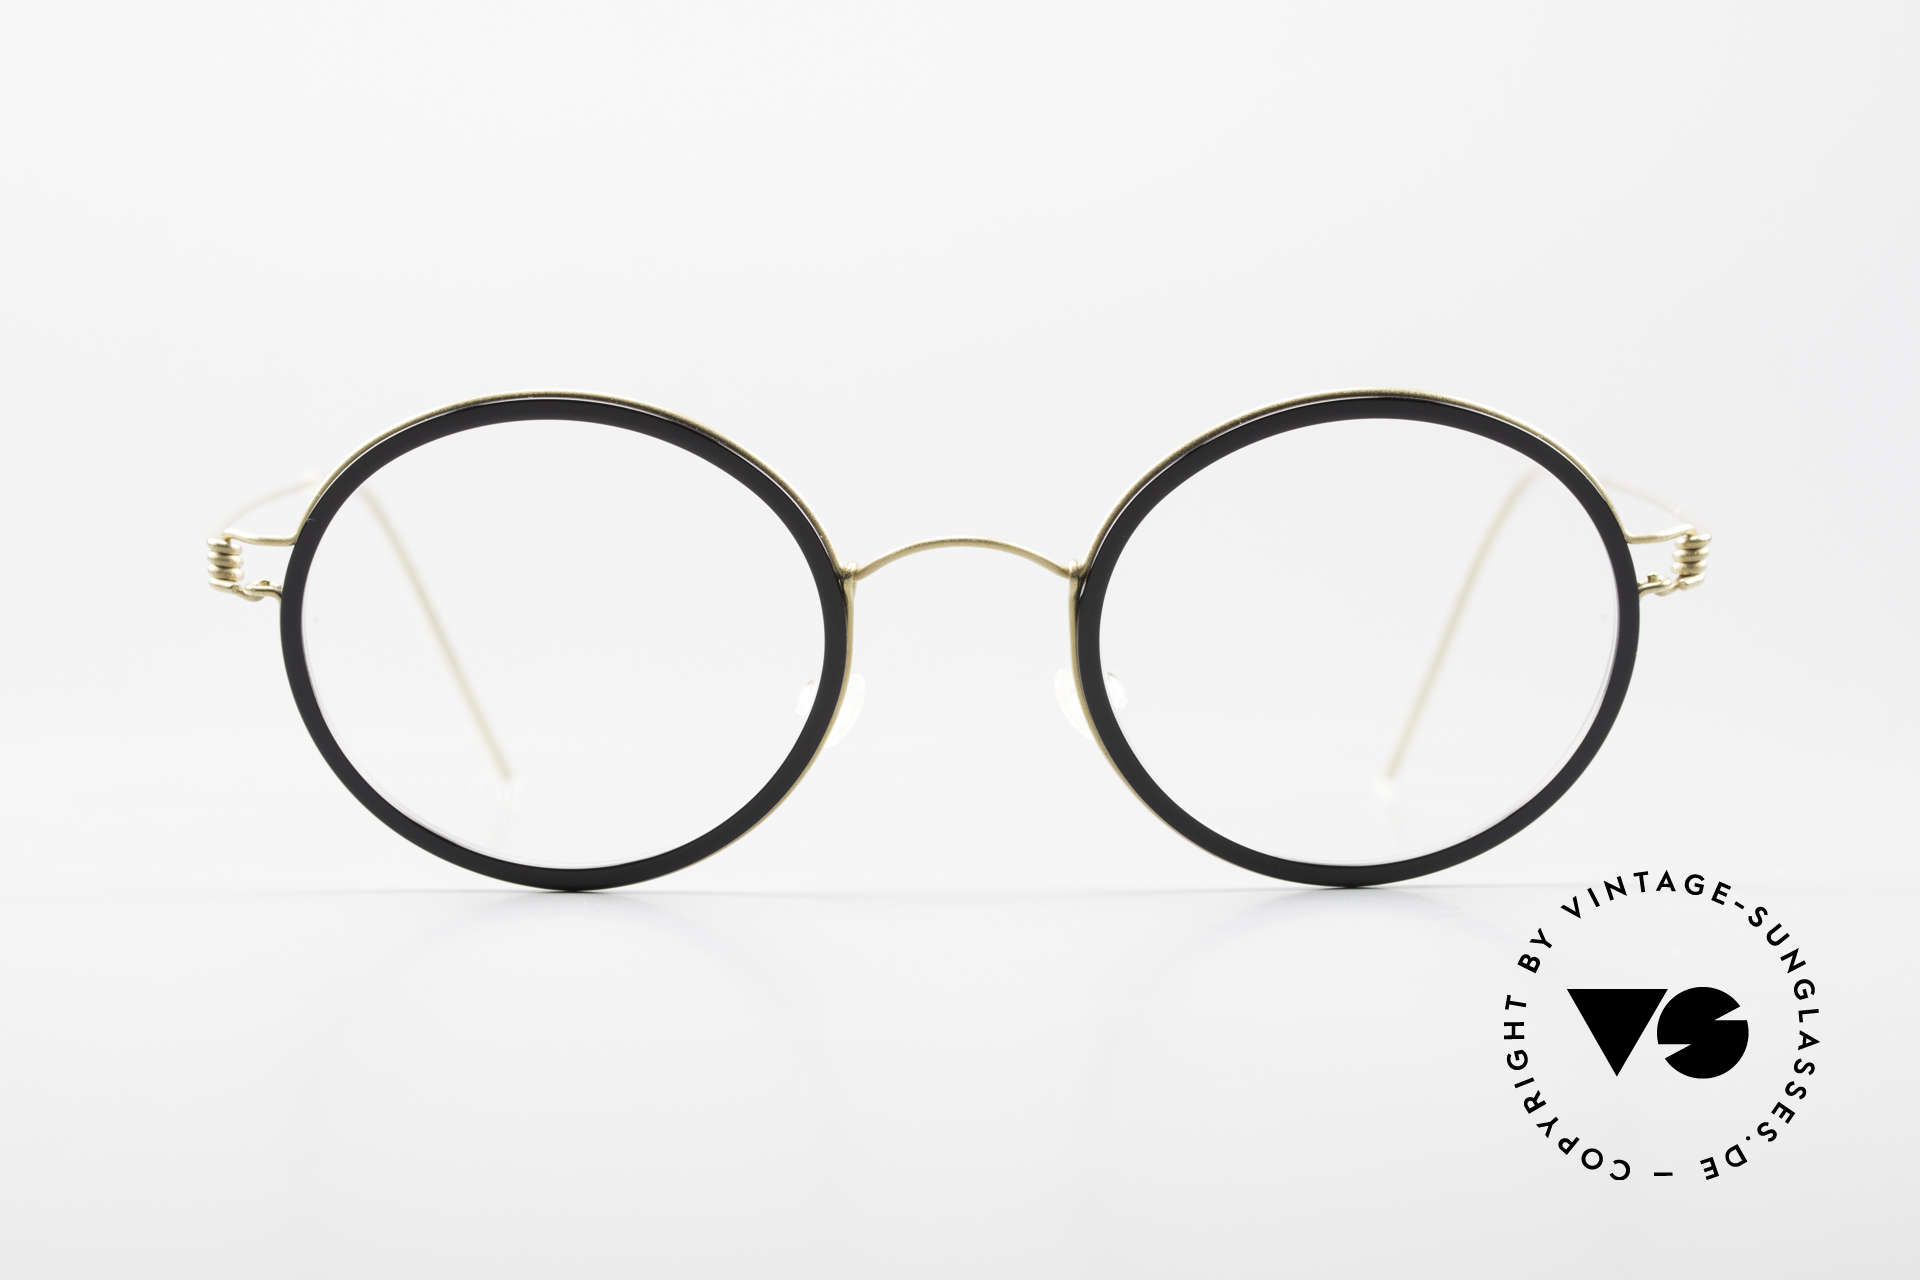 Lindberg Cameron Air Titan Rim Round Titan Glasses Acetate, mod. Cameron in size 46-22, temple length 135, col. GT, Made for Men and Women